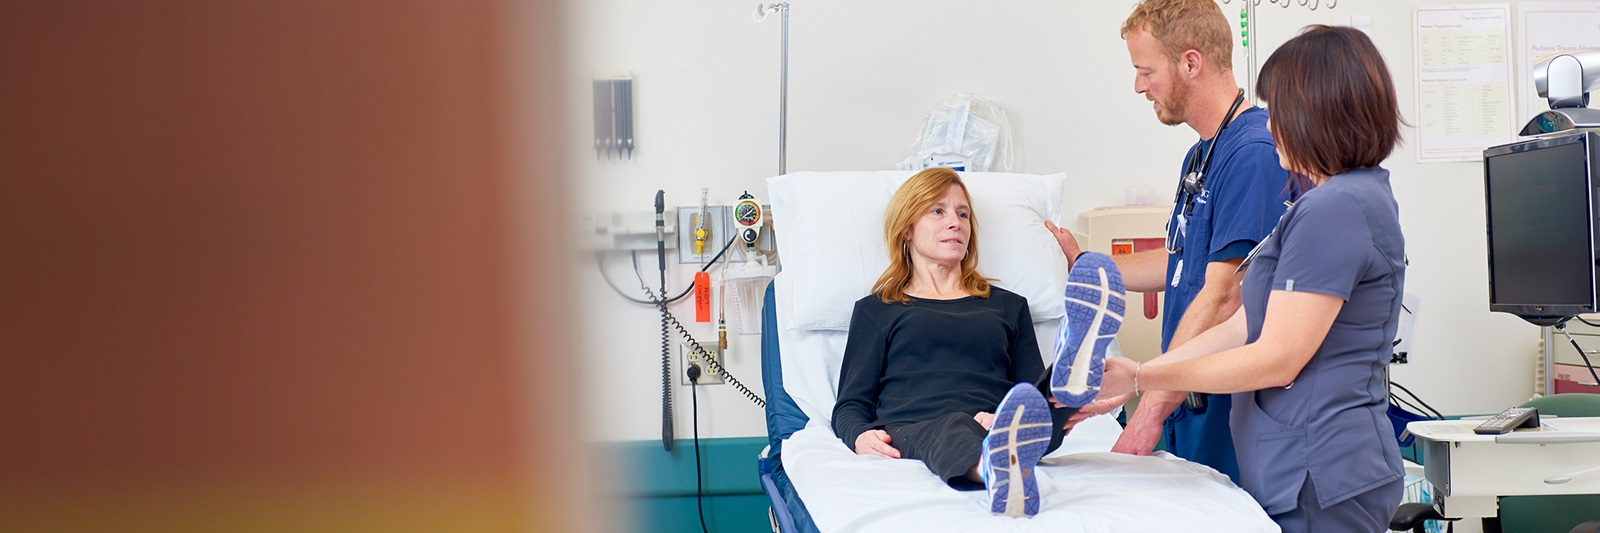 Woman raising one leg in bed as two healthcare providers look on